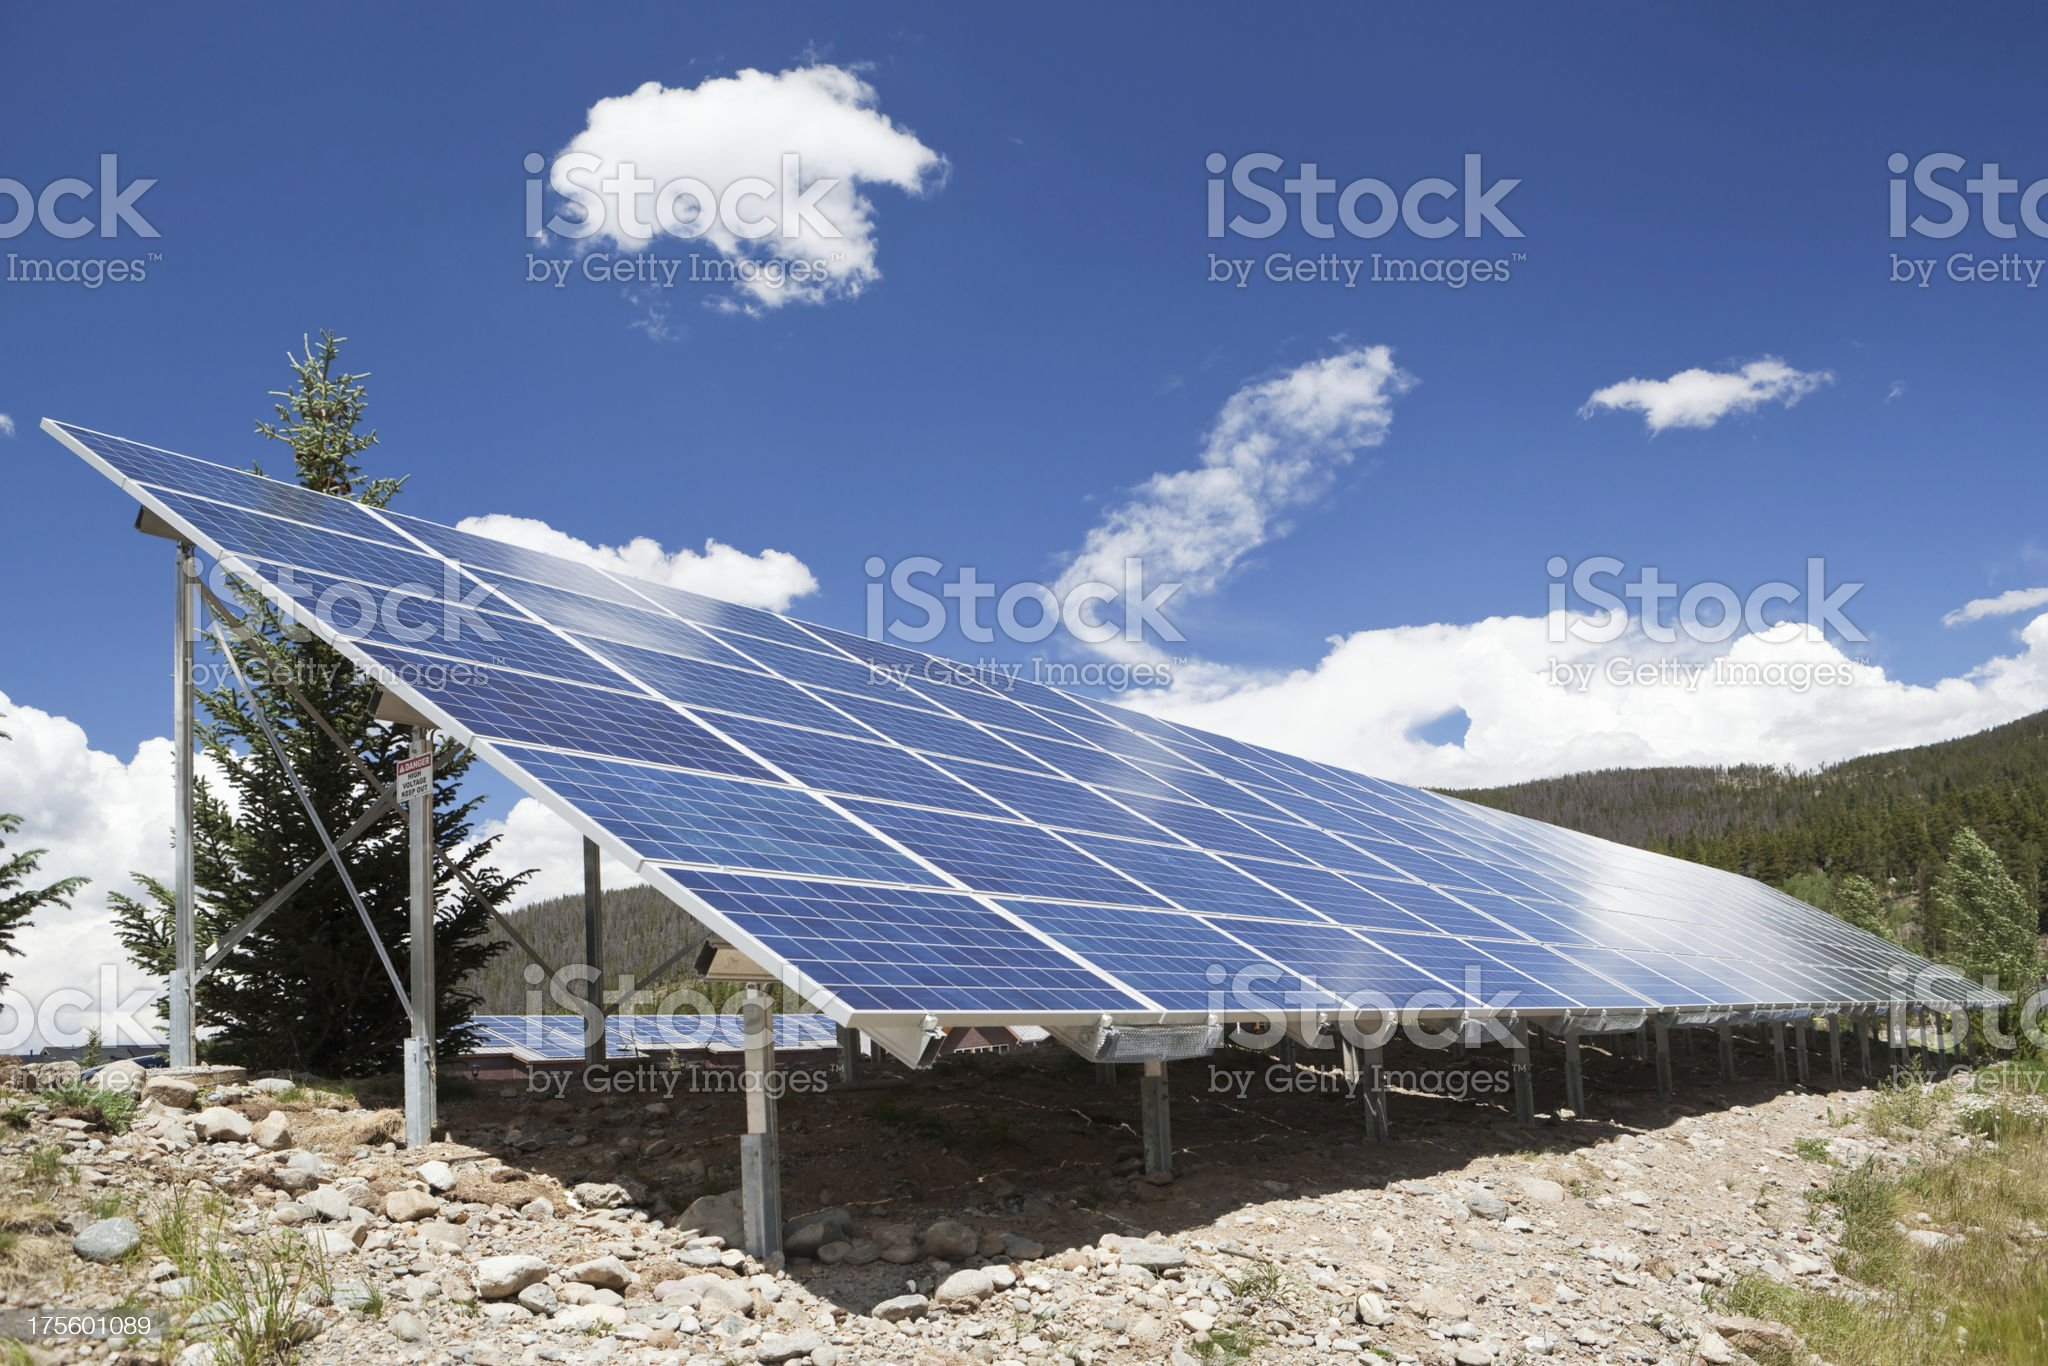 Municipal Solar Panels in a Mountain Setting royalty-free stock photo